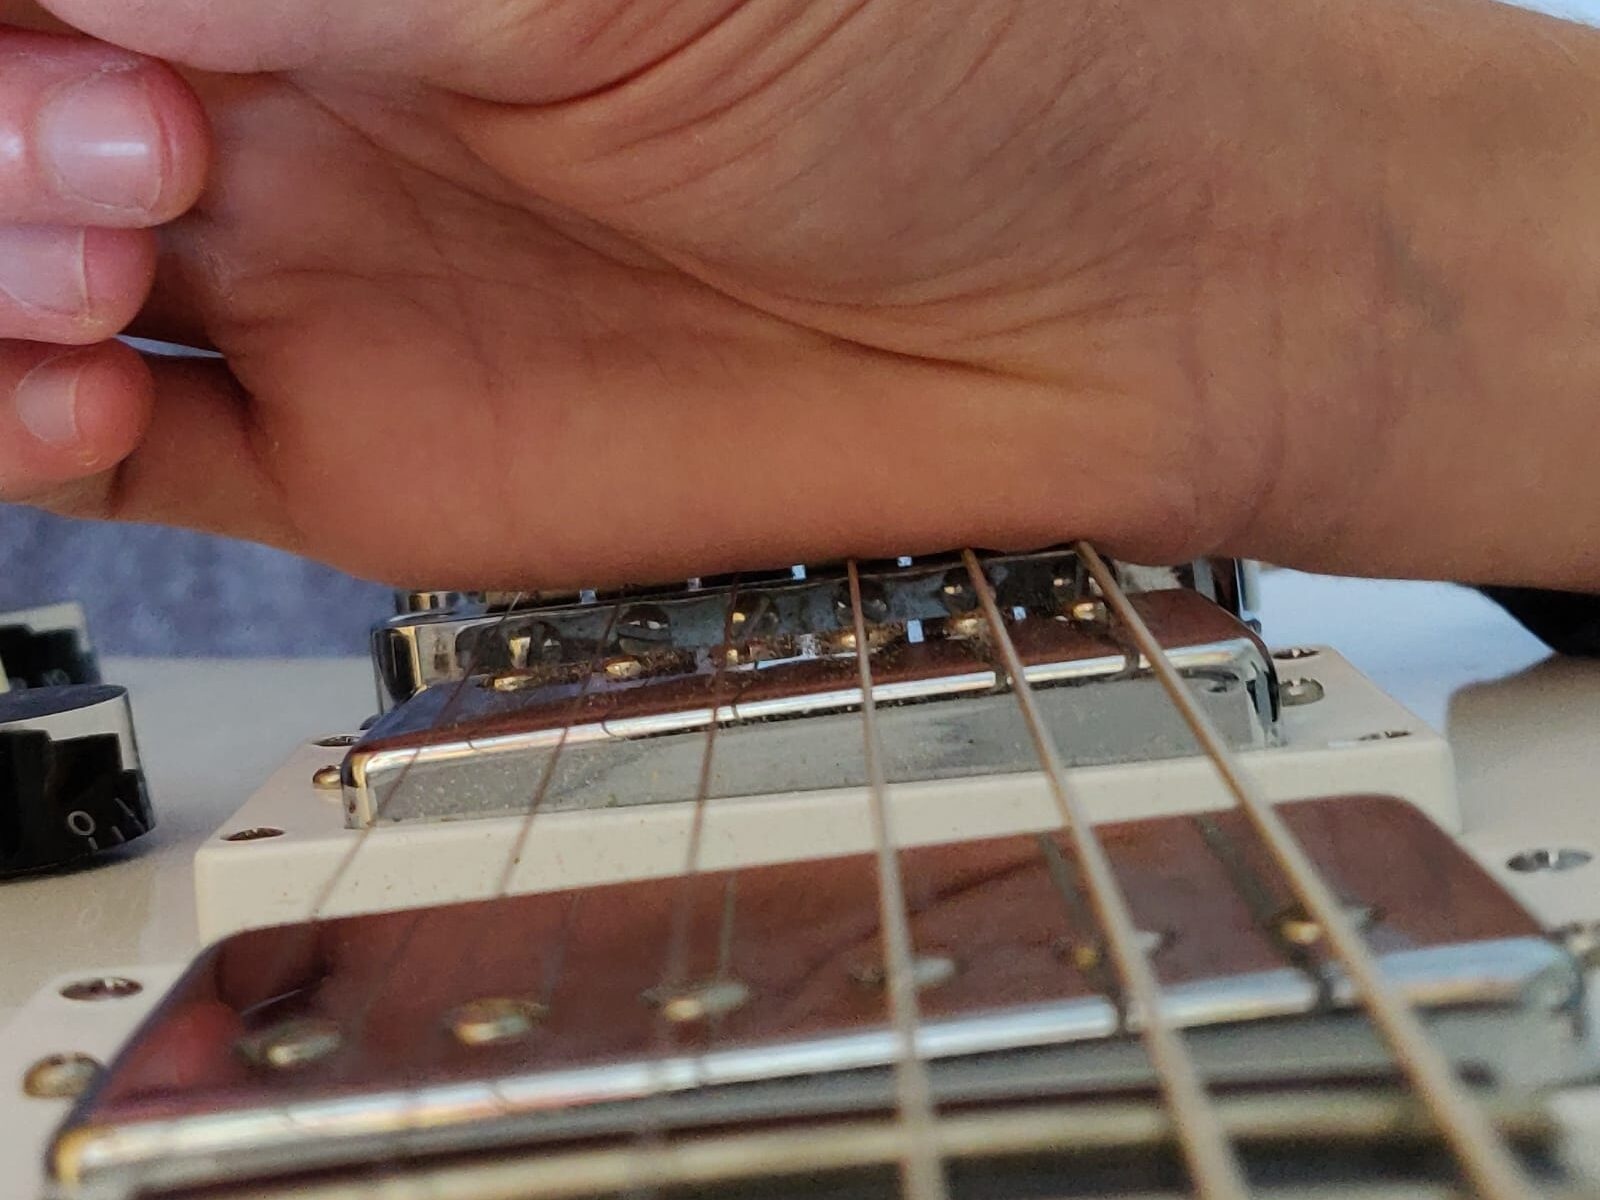 Where to rest your picking hand and palm mute the strings for tidy and clean playing.